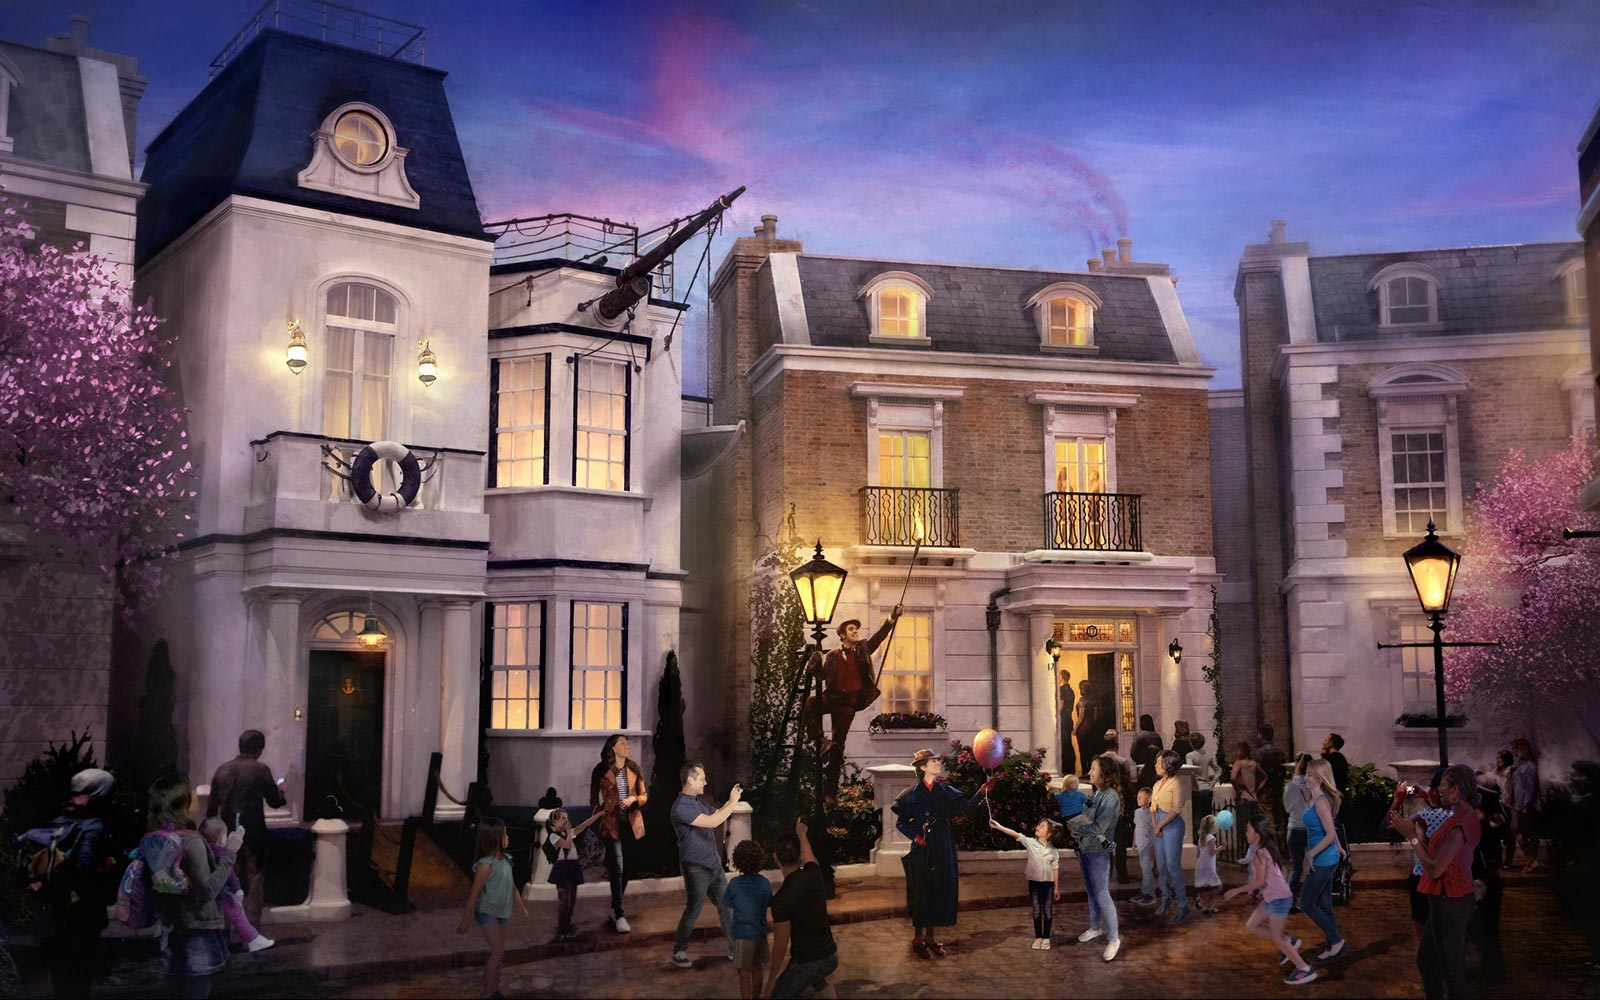 Disney World just announced its first-ever Mary Poppins attraction